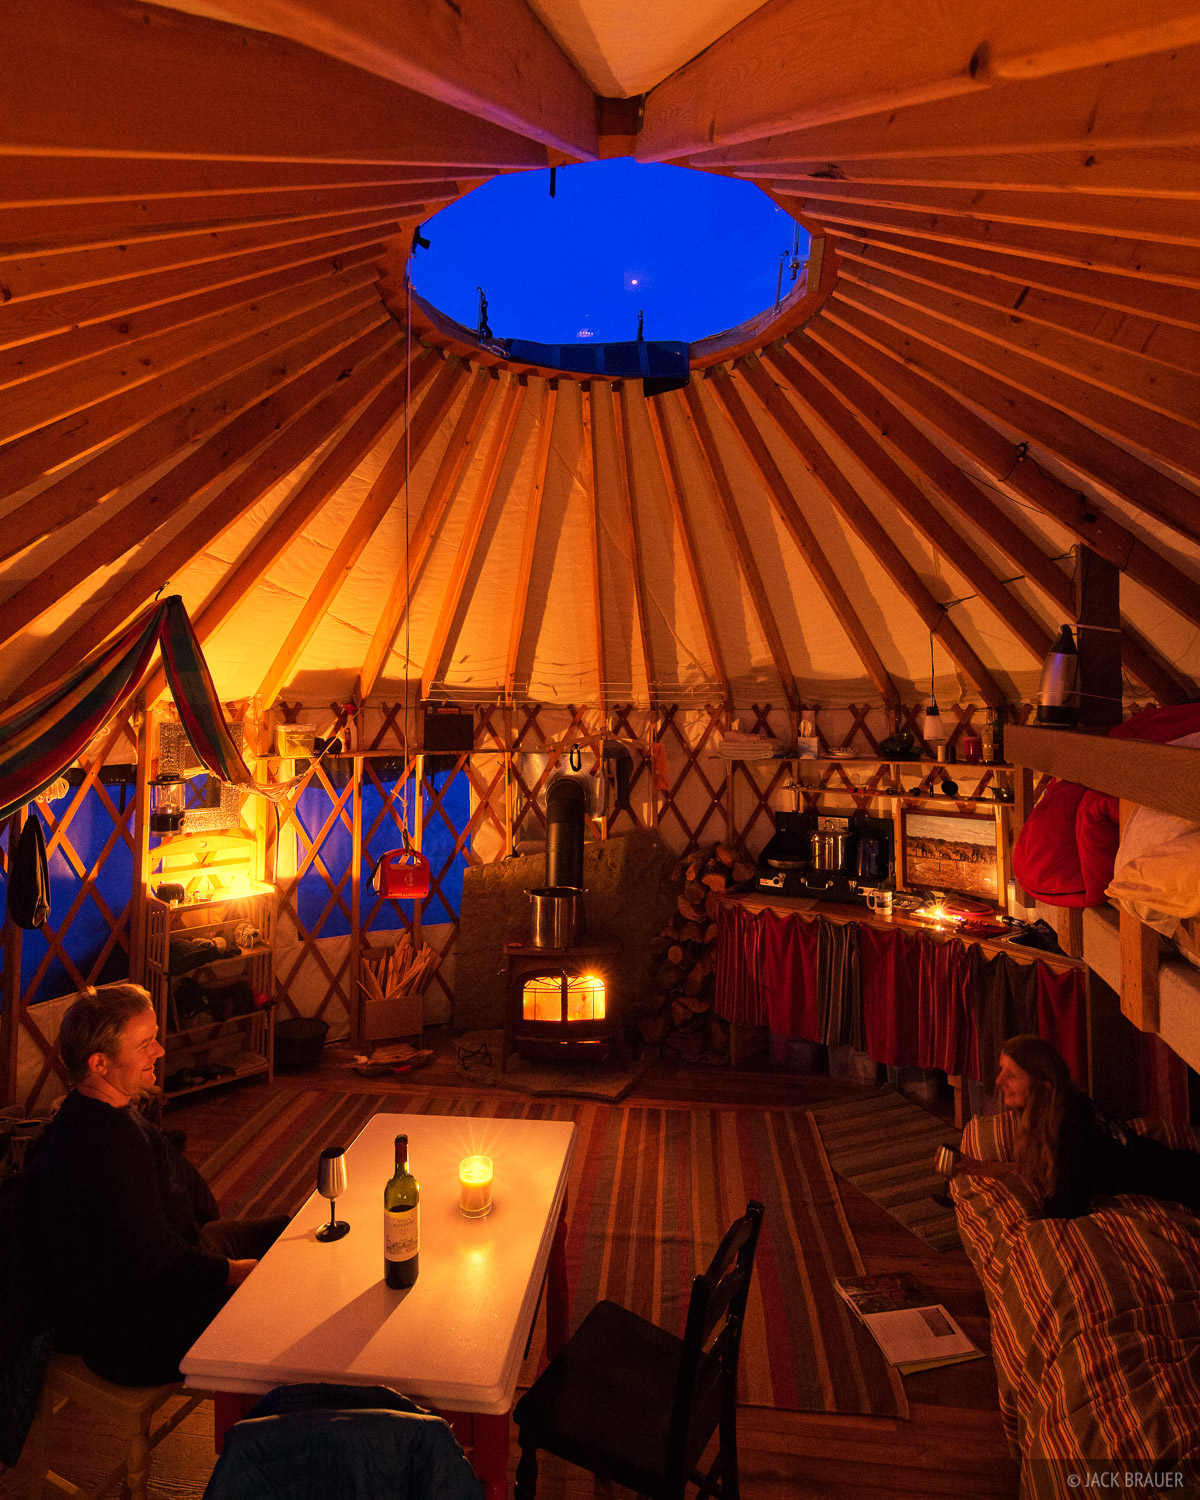 yurt, interior, Colorado, evening, winter, march, photo